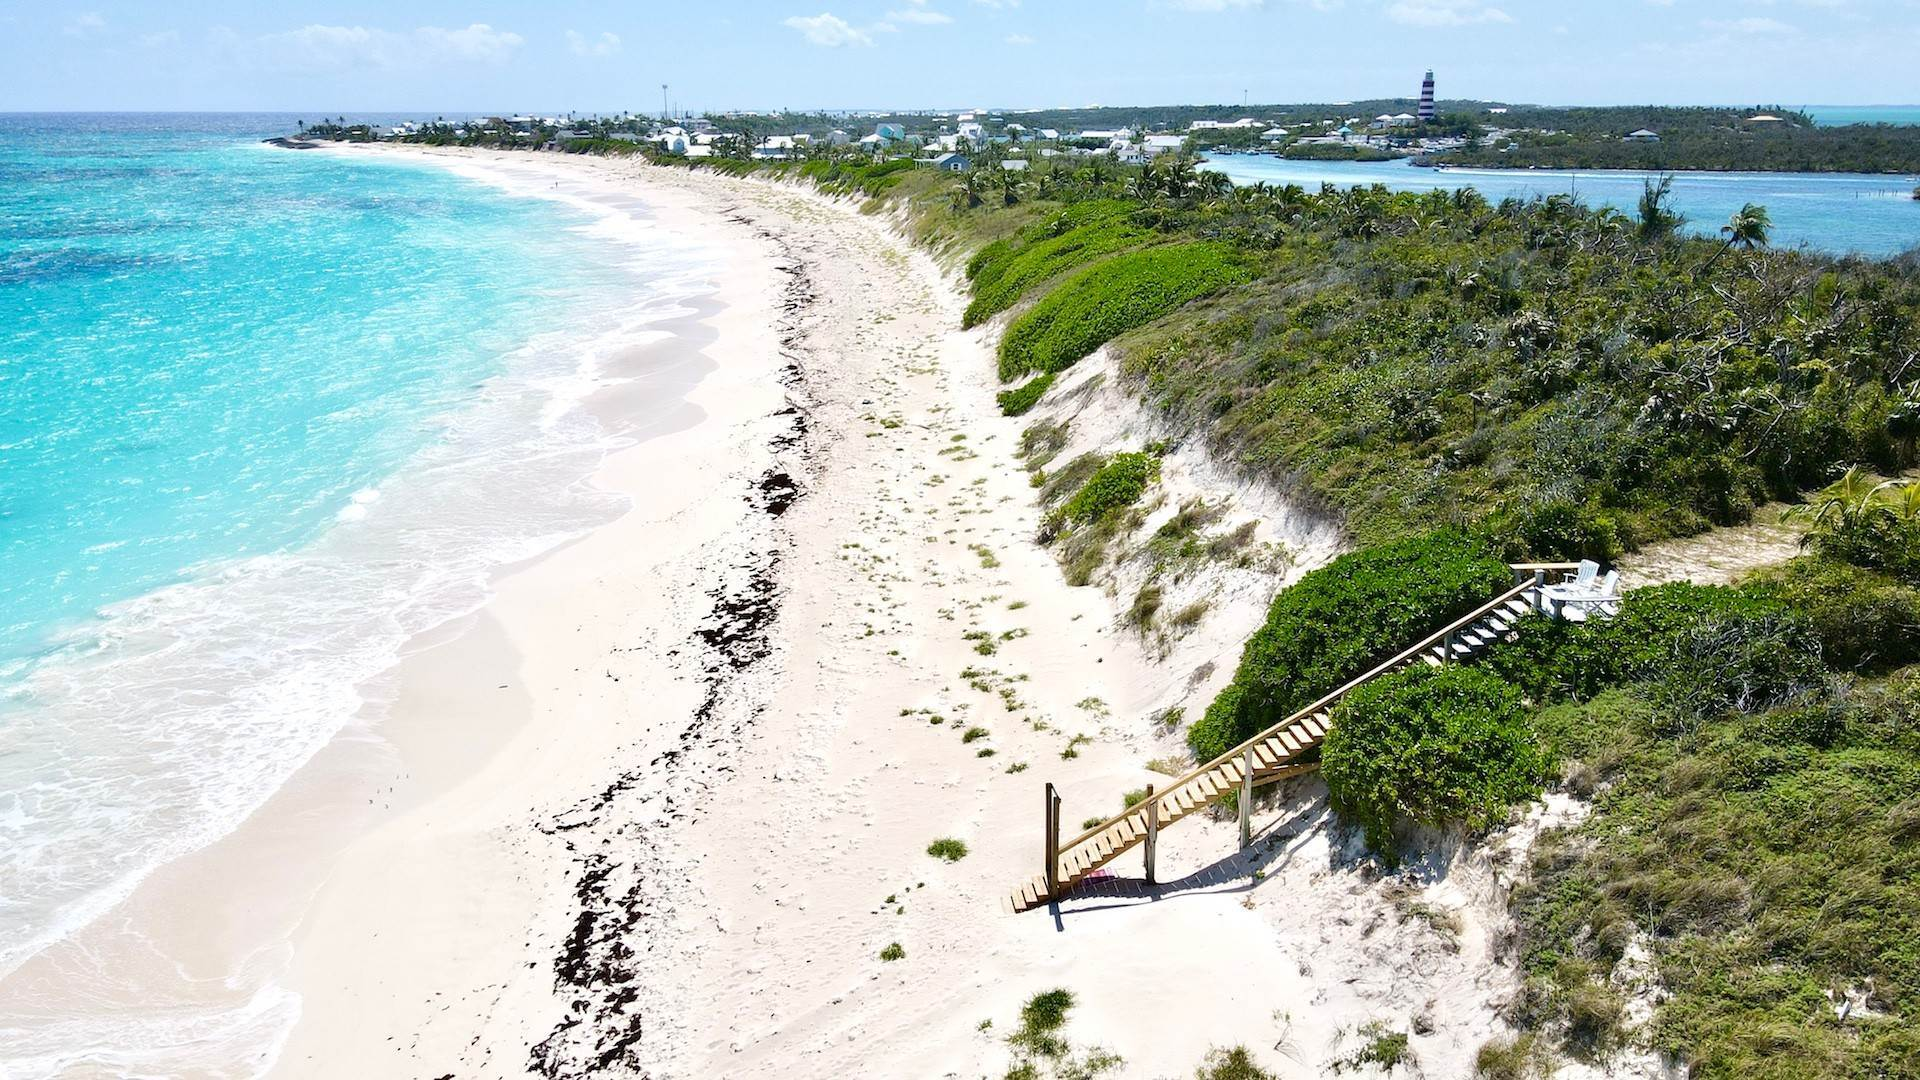 5. Single Family Homes for Sale at Sea to Sea - MLS 43964 Elbow Cay Hope Town, Abaco, Bahamas